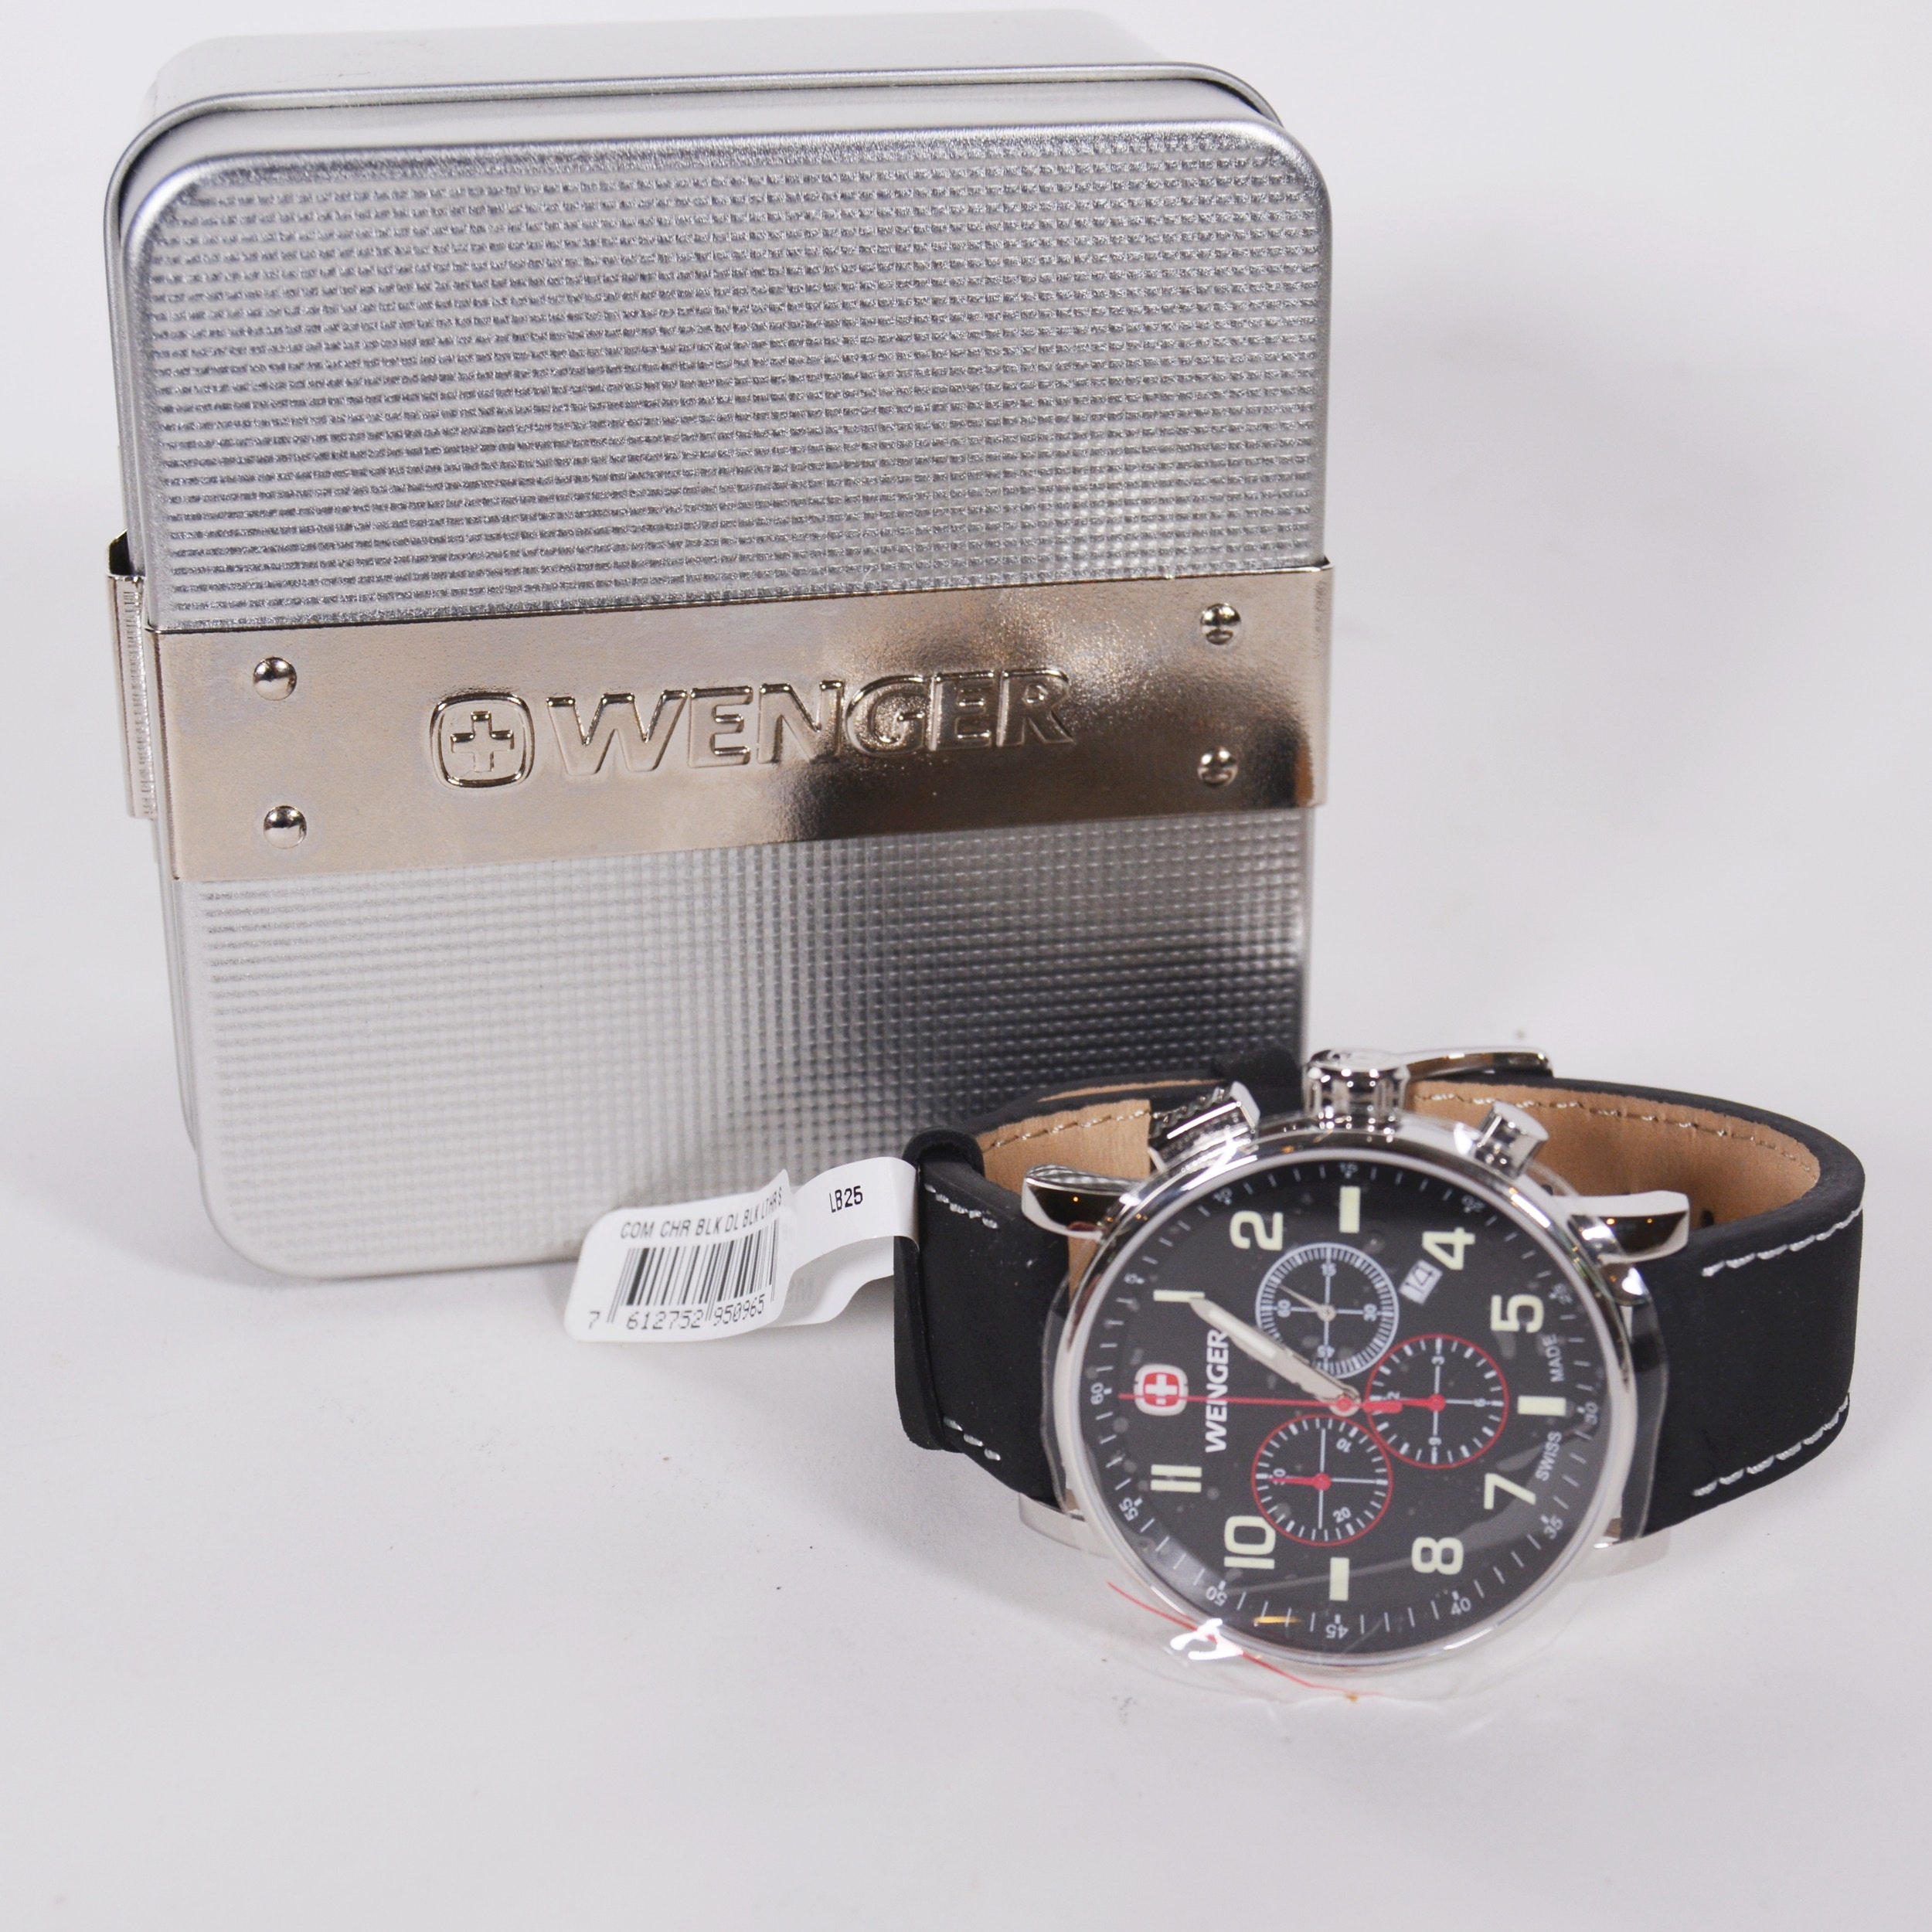 Wenger Chronograph Stainless Steel Wristwatch